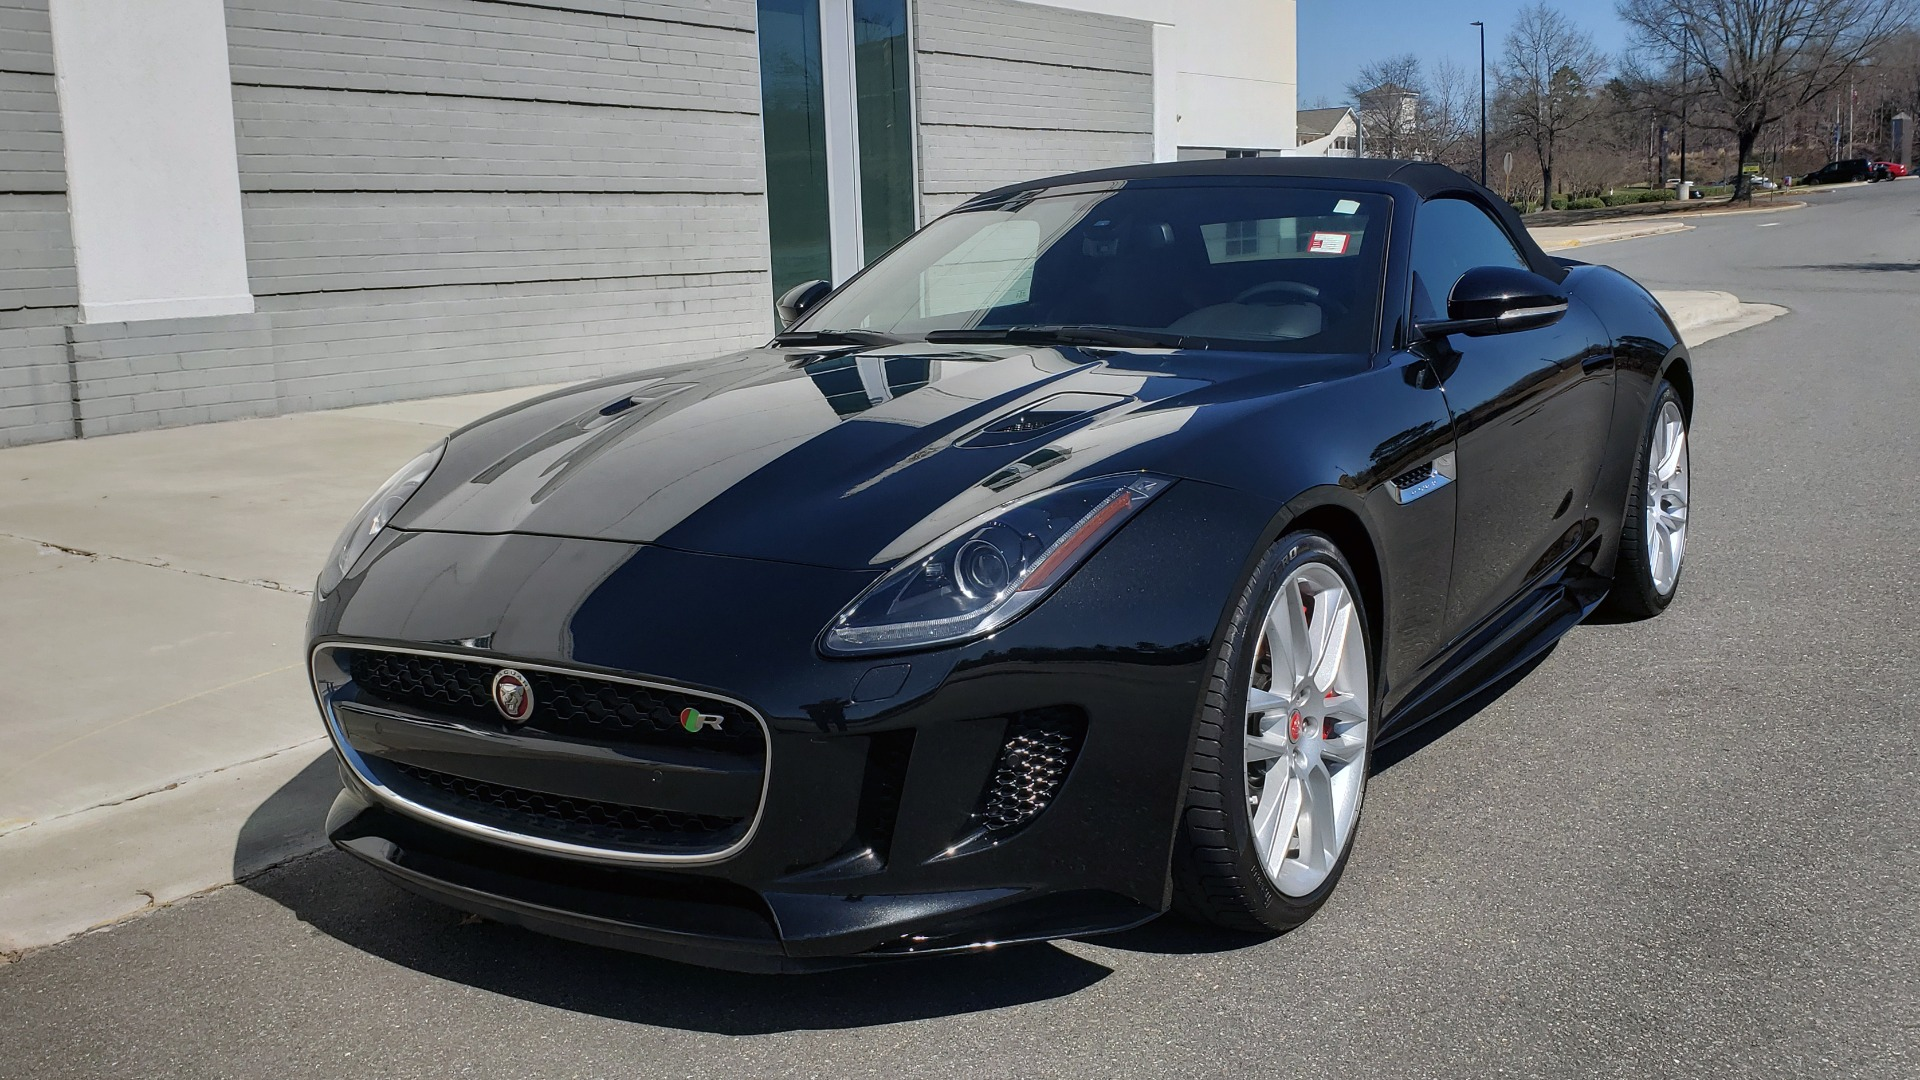 Used 2016 Jaguar F-TYPE R CONVERTIBLE / SC 5.0L 550HP / VISION PACK 3 / BSM / REARVIEW for sale $63,000 at Formula Imports in Charlotte NC 28227 2